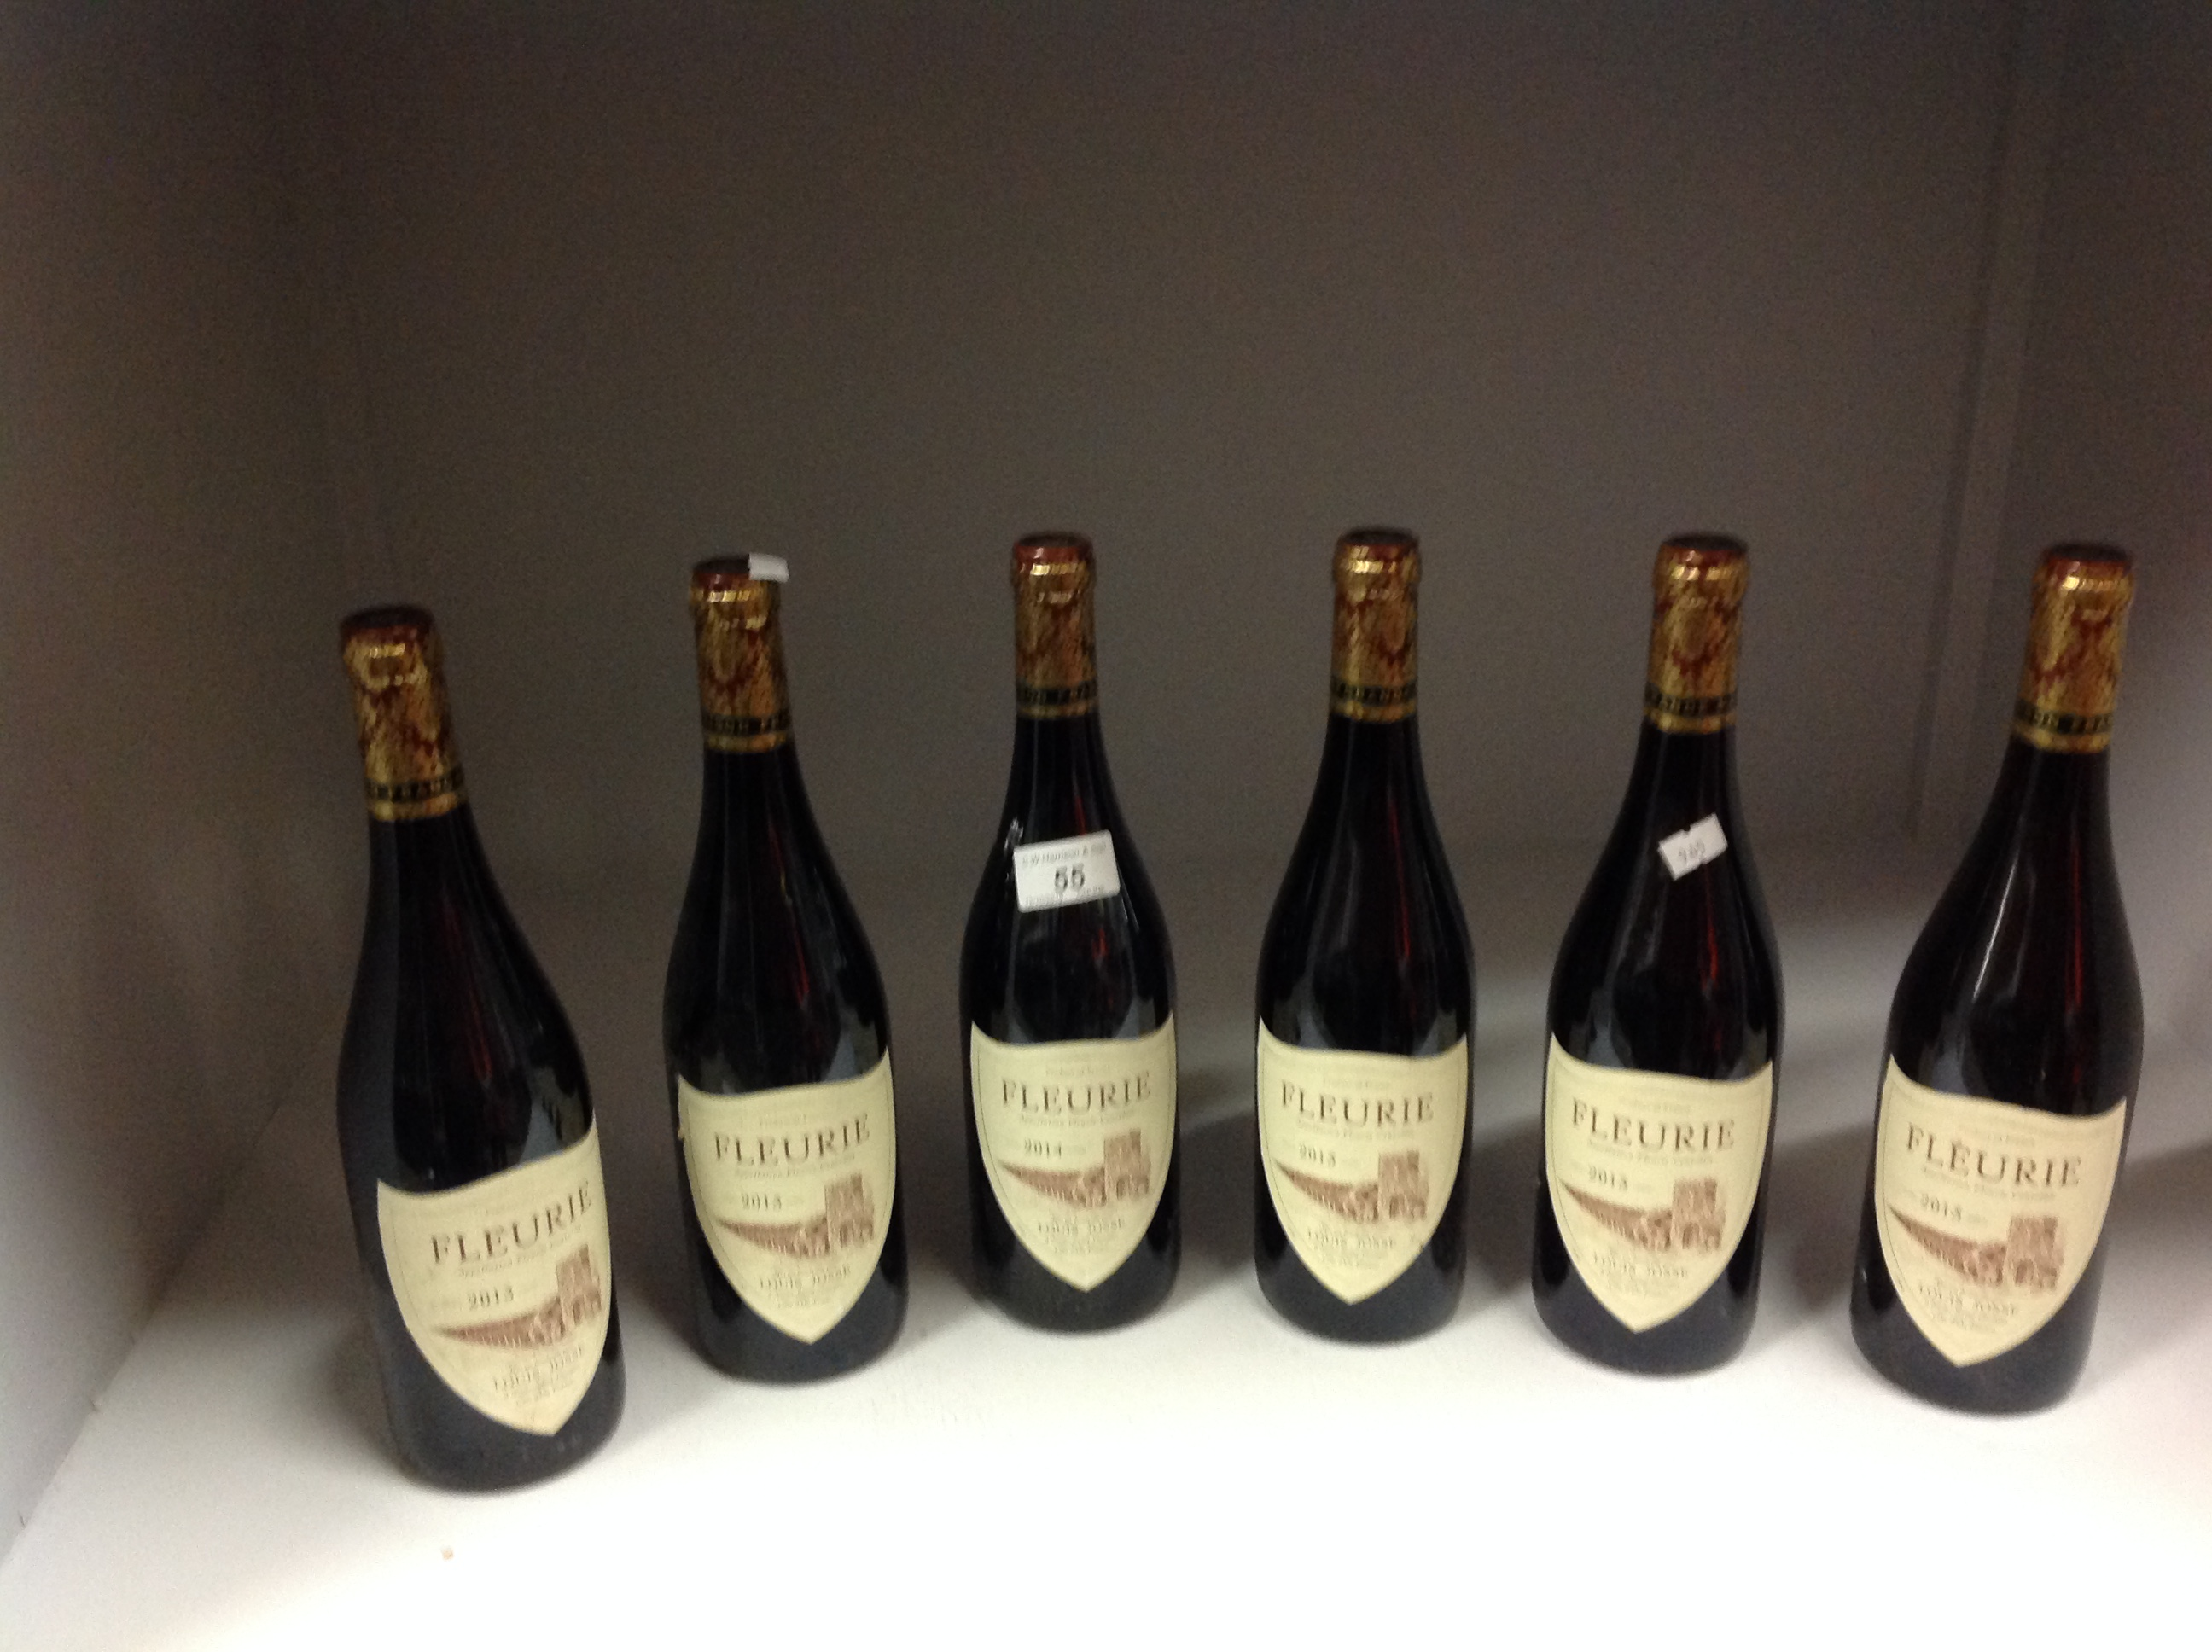 Lot 55 - 6 x 750ml bottles Louis Josse Fleurie